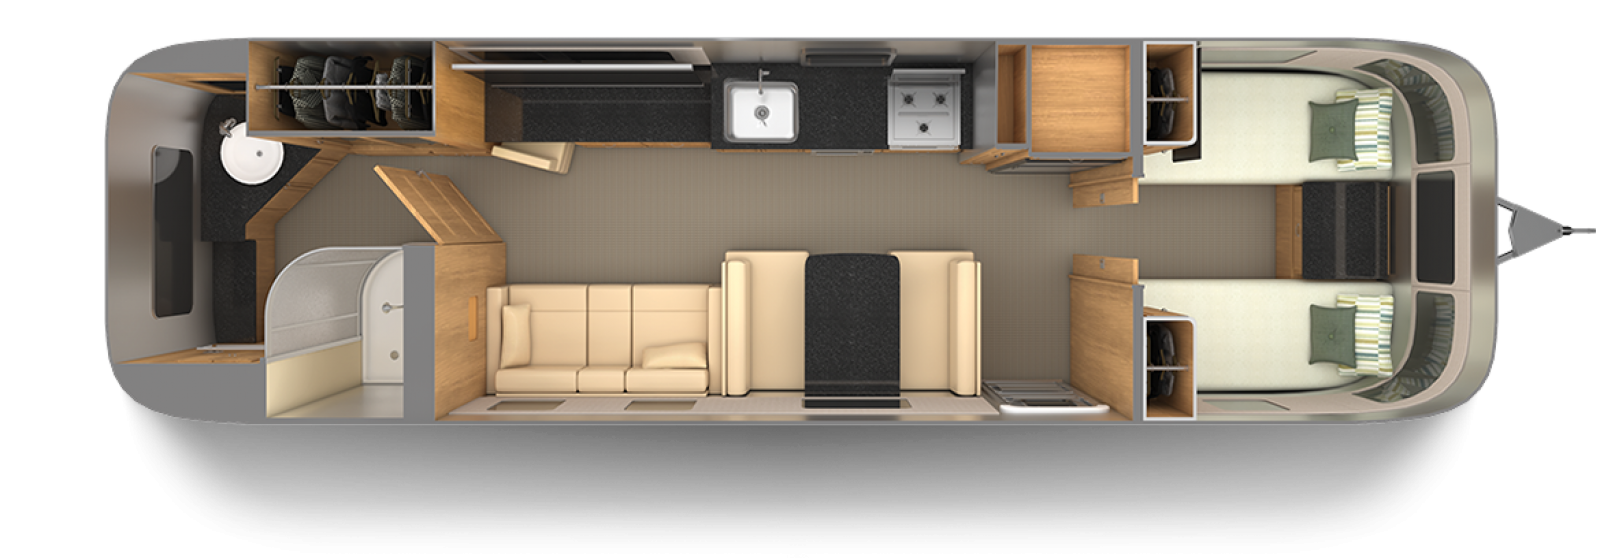 Airstream-Classic-33FB-Twin-Cognac-Maple-with-Macadamia-Floor-Plan